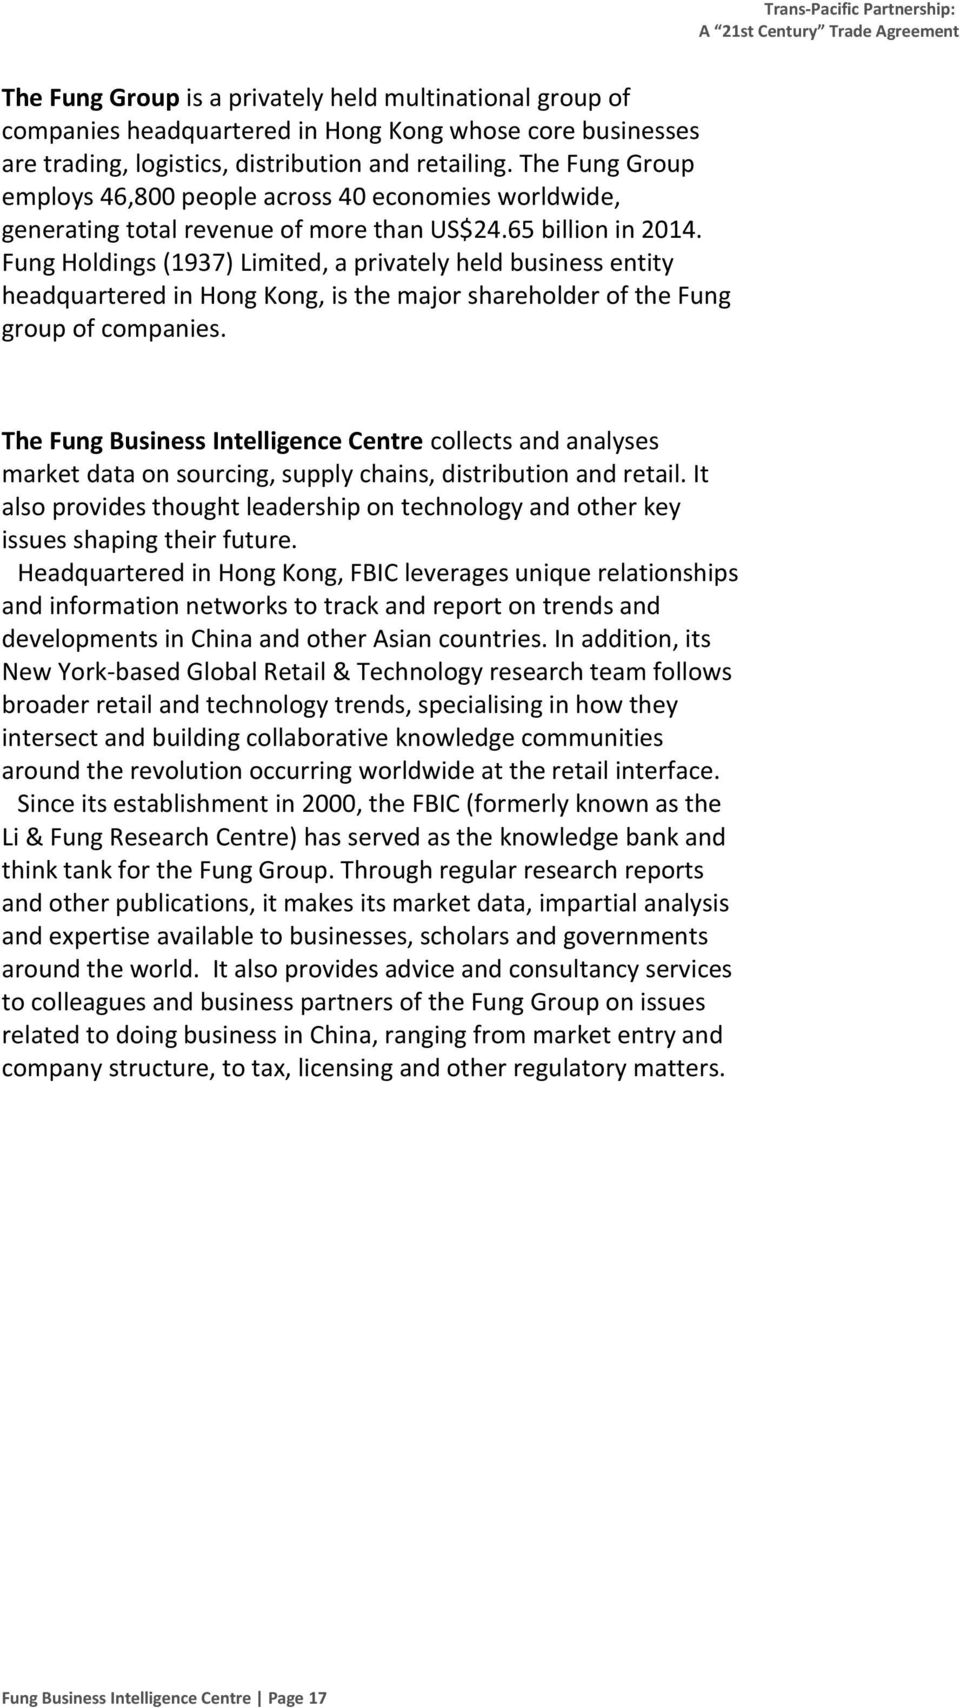 Fung Holdings (1937) Limited, a privately held business entity headquartered in Hong Kong, is the major shareholder of the Fung group of companies.